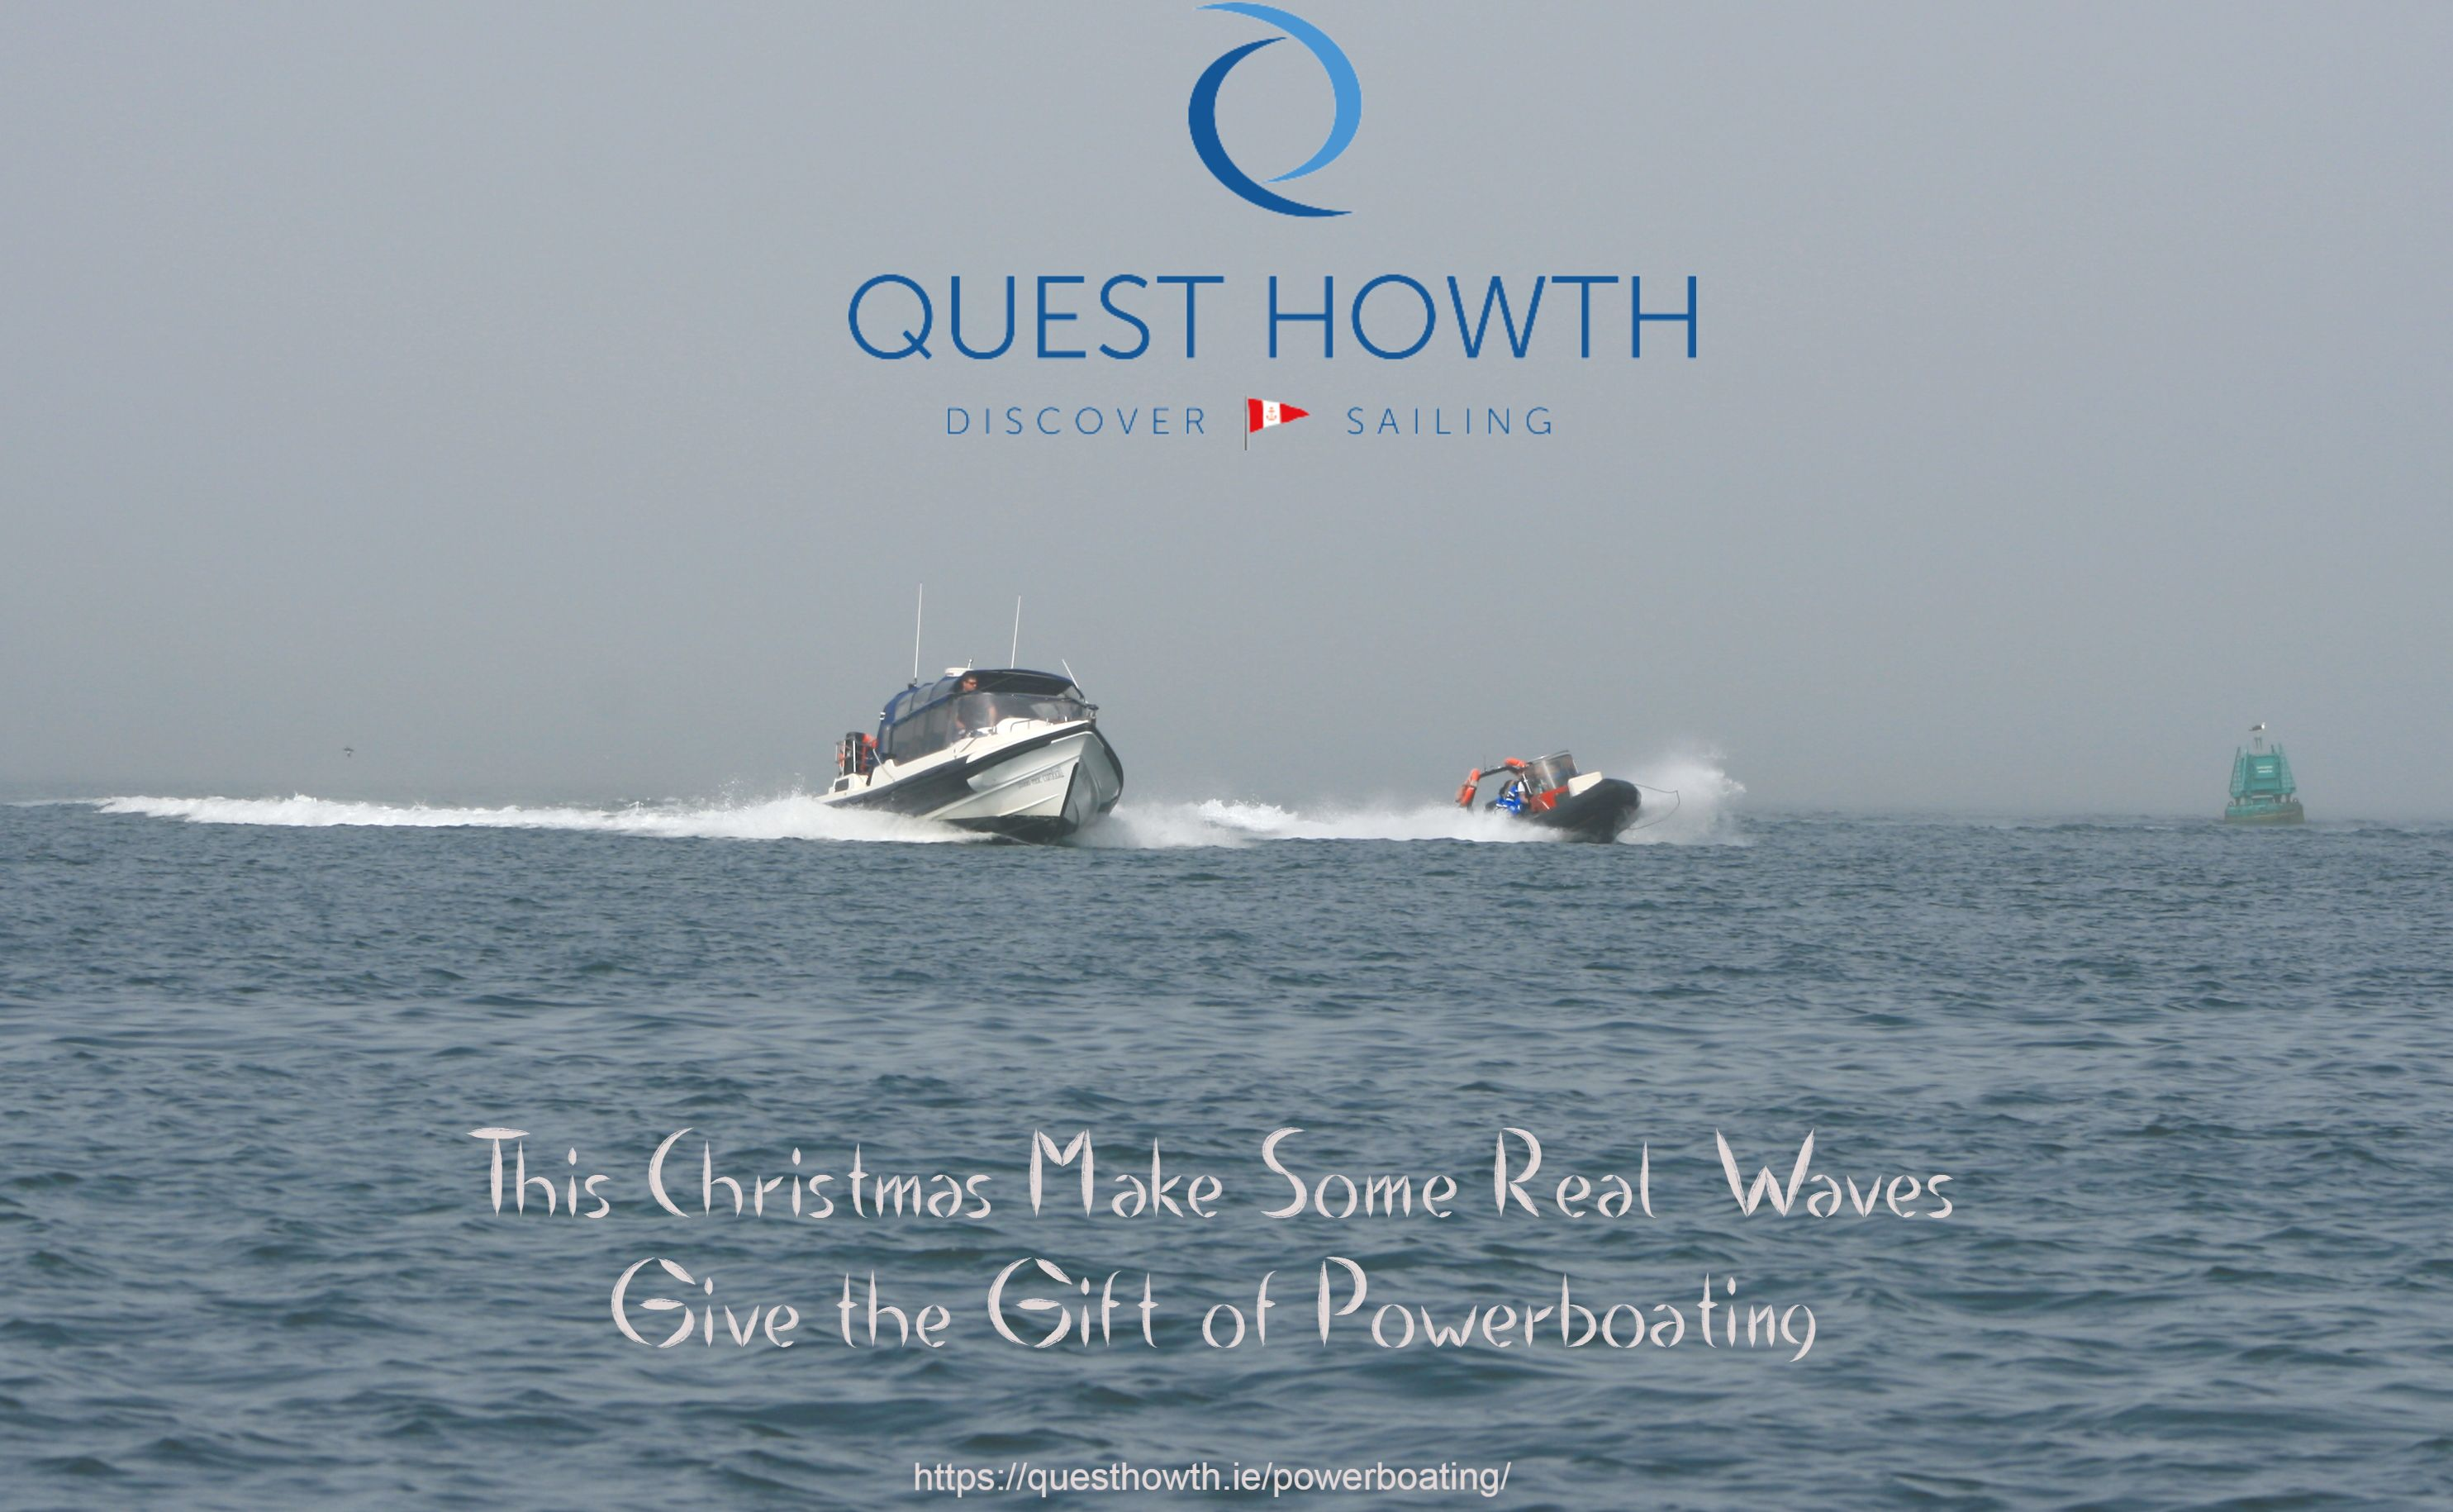 This Christmas Give the Gift of Powerboating in Howth!